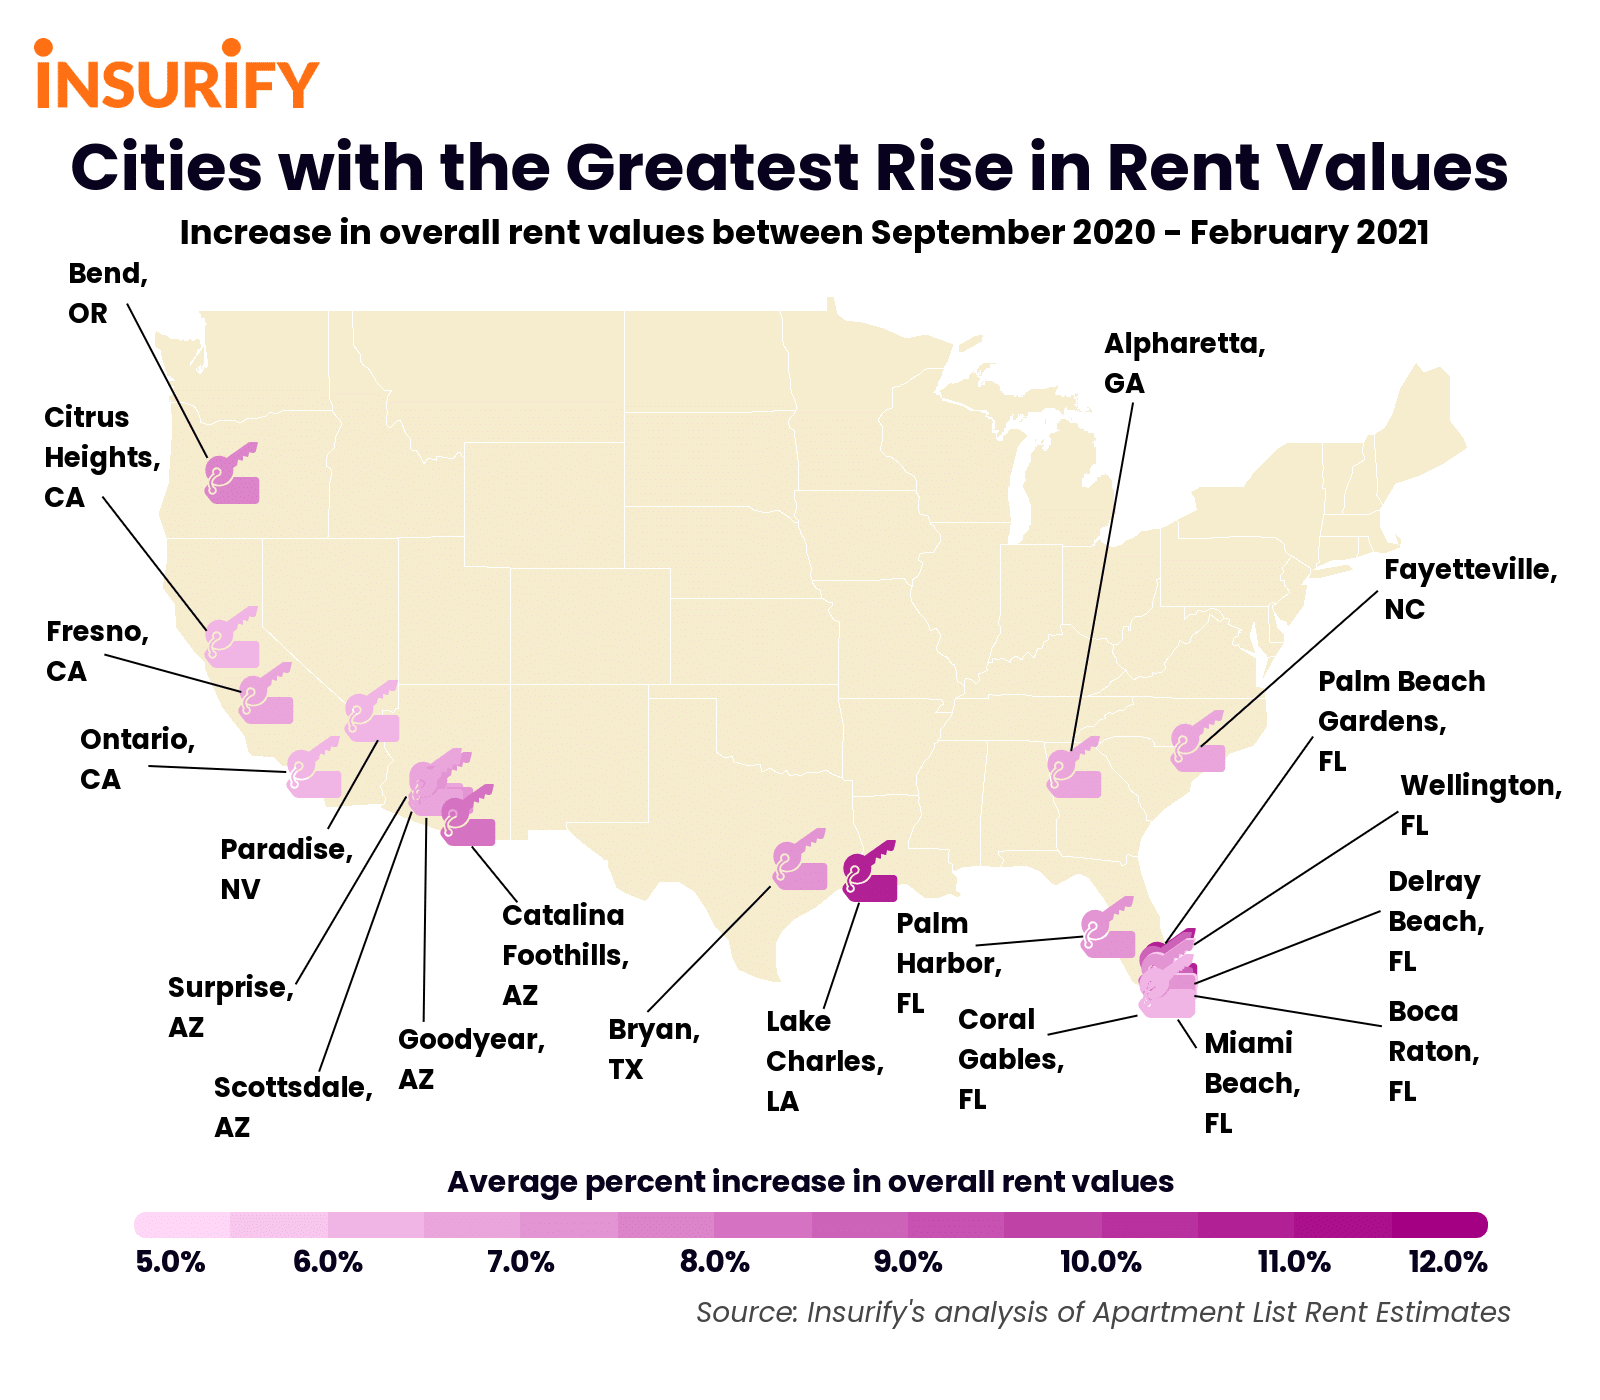 Icon map showing the 20 cities where rent values increased the most between September 2020 and February 2021.